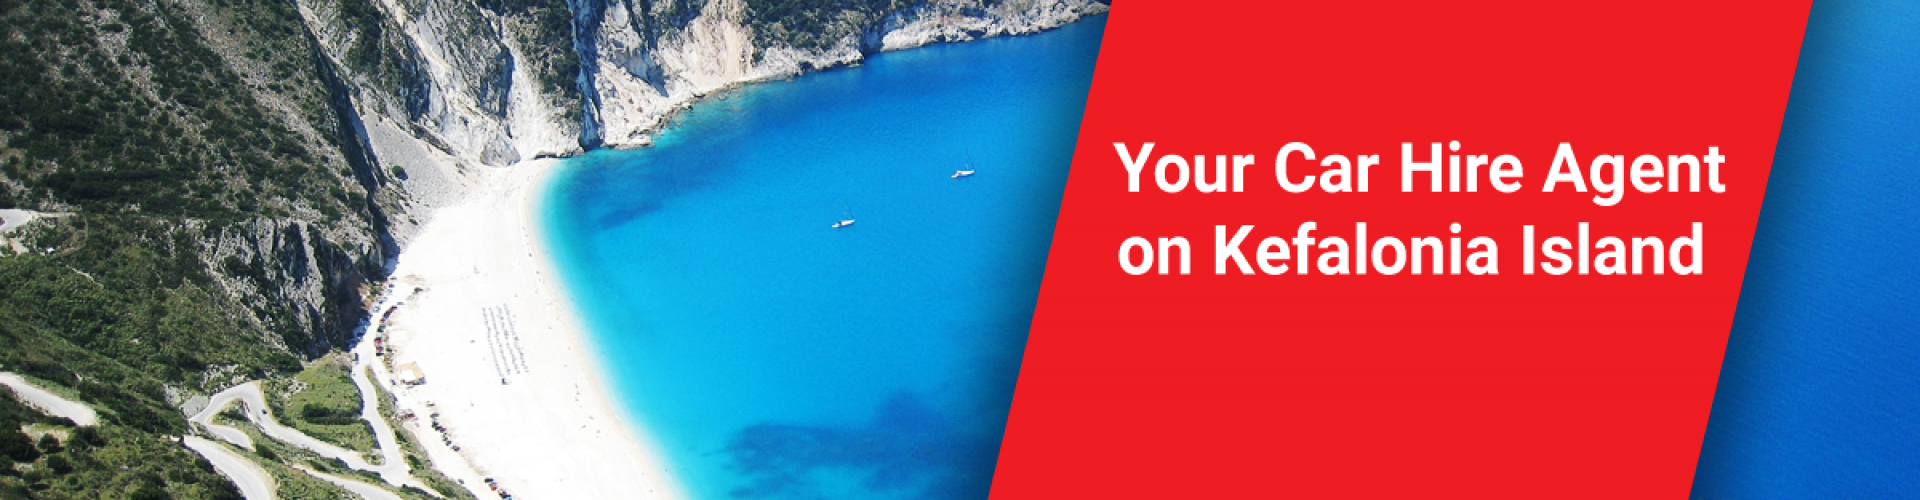 Express Rent A Car: Car Hire service in Kefalonia, Greece